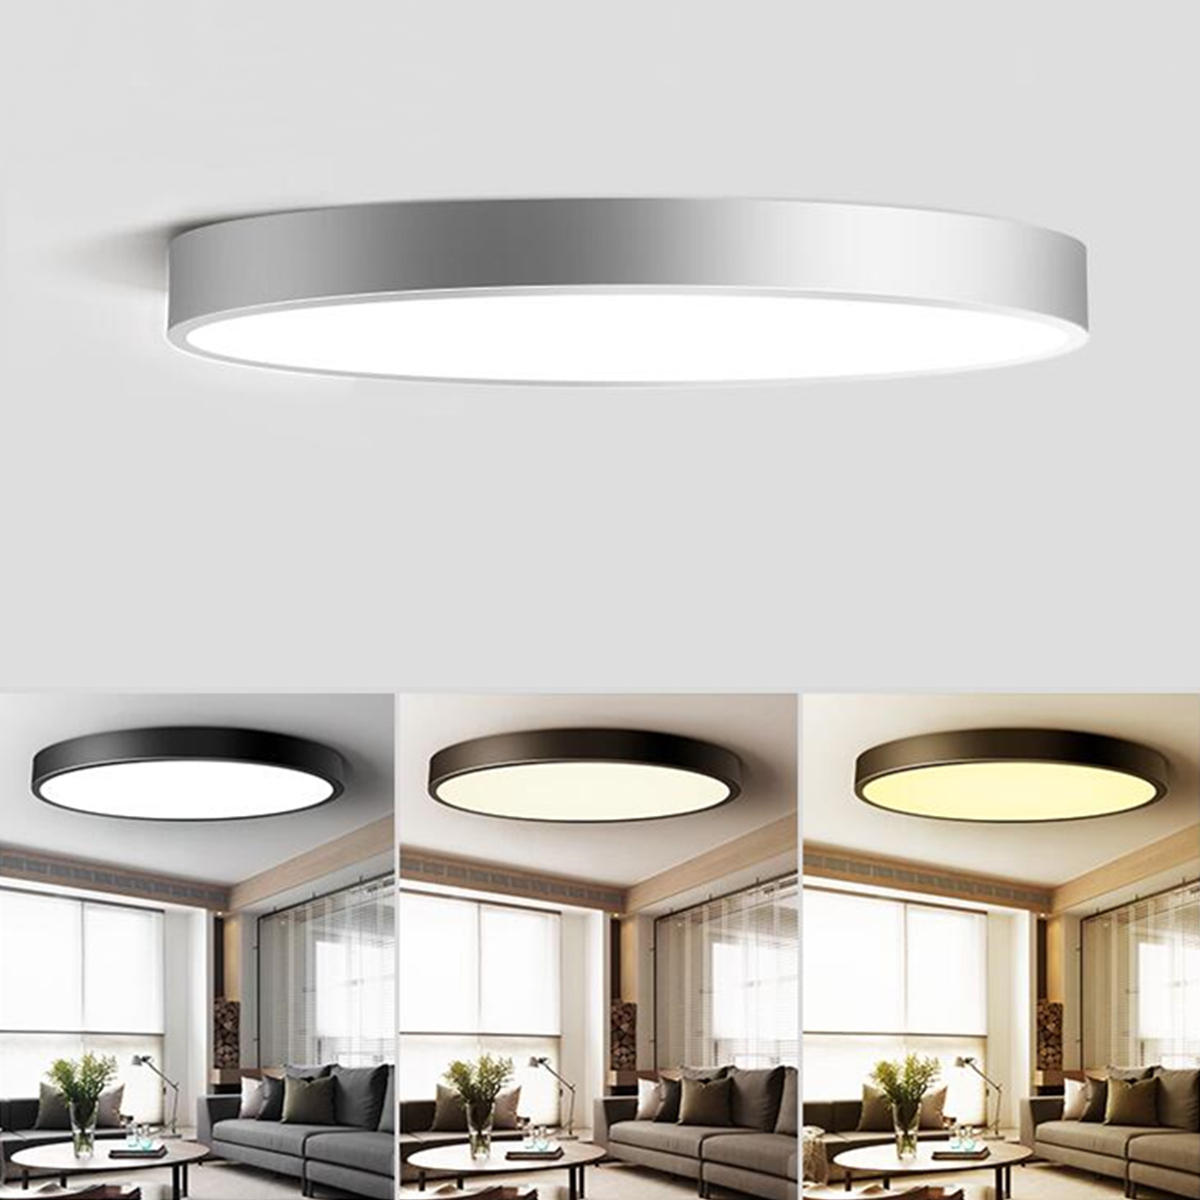 online retailer 73358 2c25d 18W Modern Dimming Round LED Ceiling Light Surface Mount Lamp for Foyer  Porch Bedroom AC220V